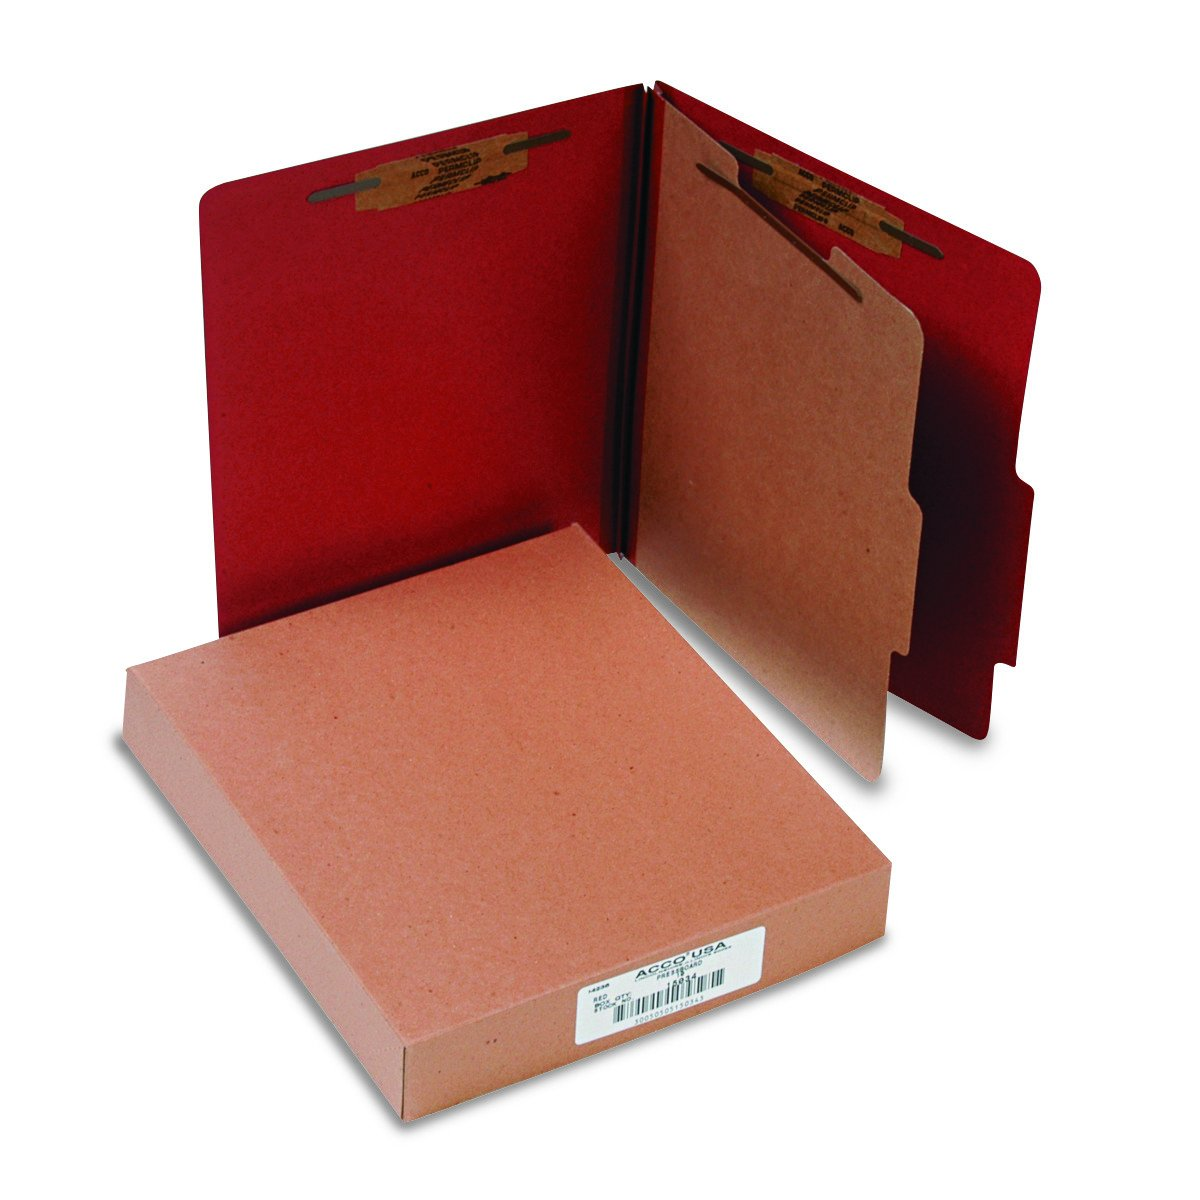 ACCO Classification Folders with Fasteners, Pressboard, 4-Part, Letter Size, Red, 10 per Box (15034) by ACCO